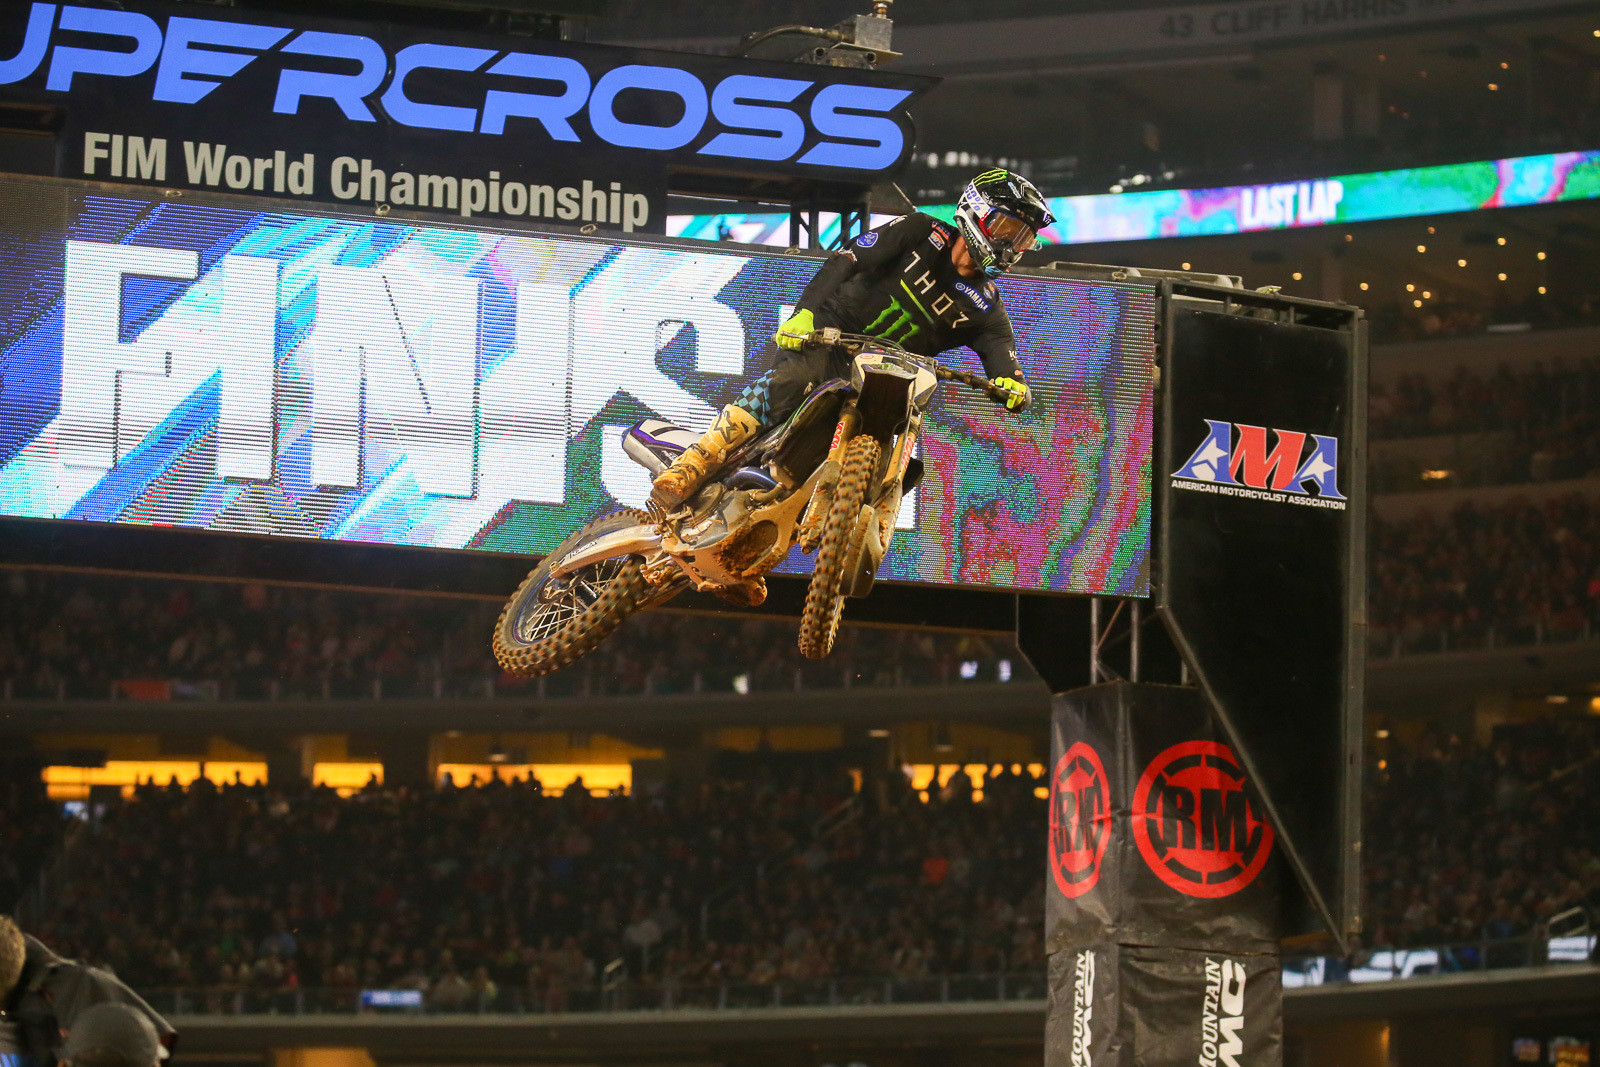 Aaron Plessinger had a whopping +17 for the three mains.